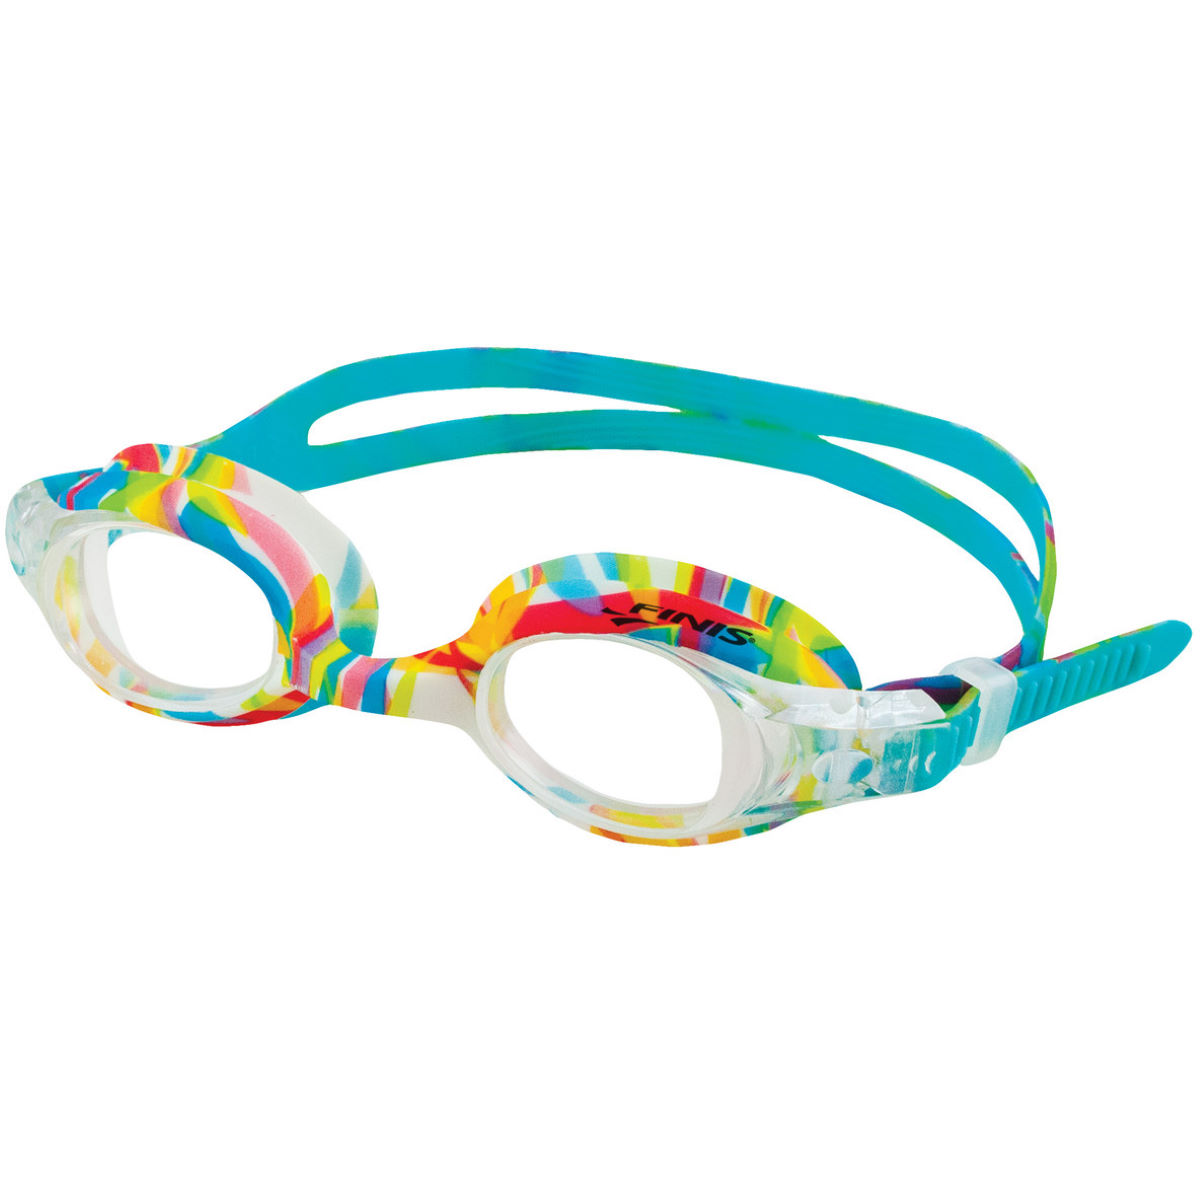 Finis FINIS Mermaid Goggles   Goggles